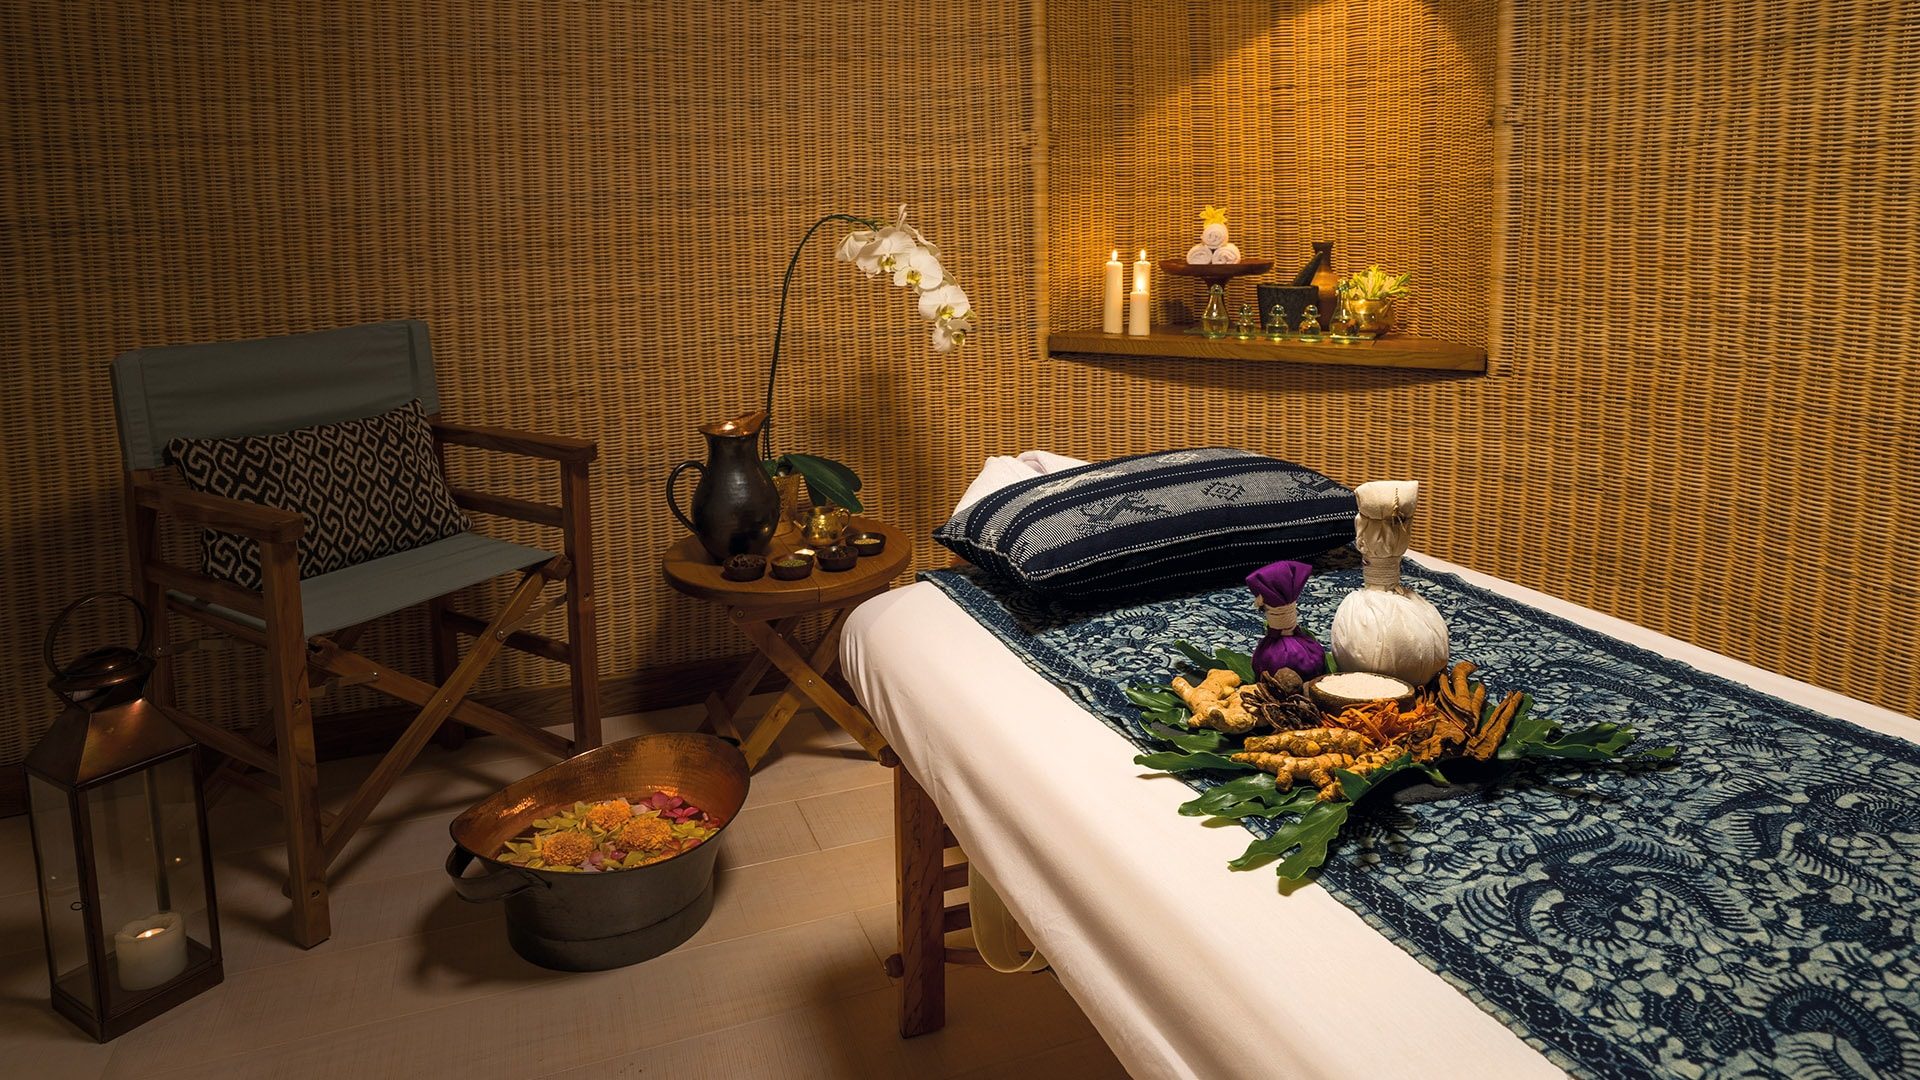 Kudanil Explorer's relaxing Java spa room with foot bath and fresh aromatic herbs